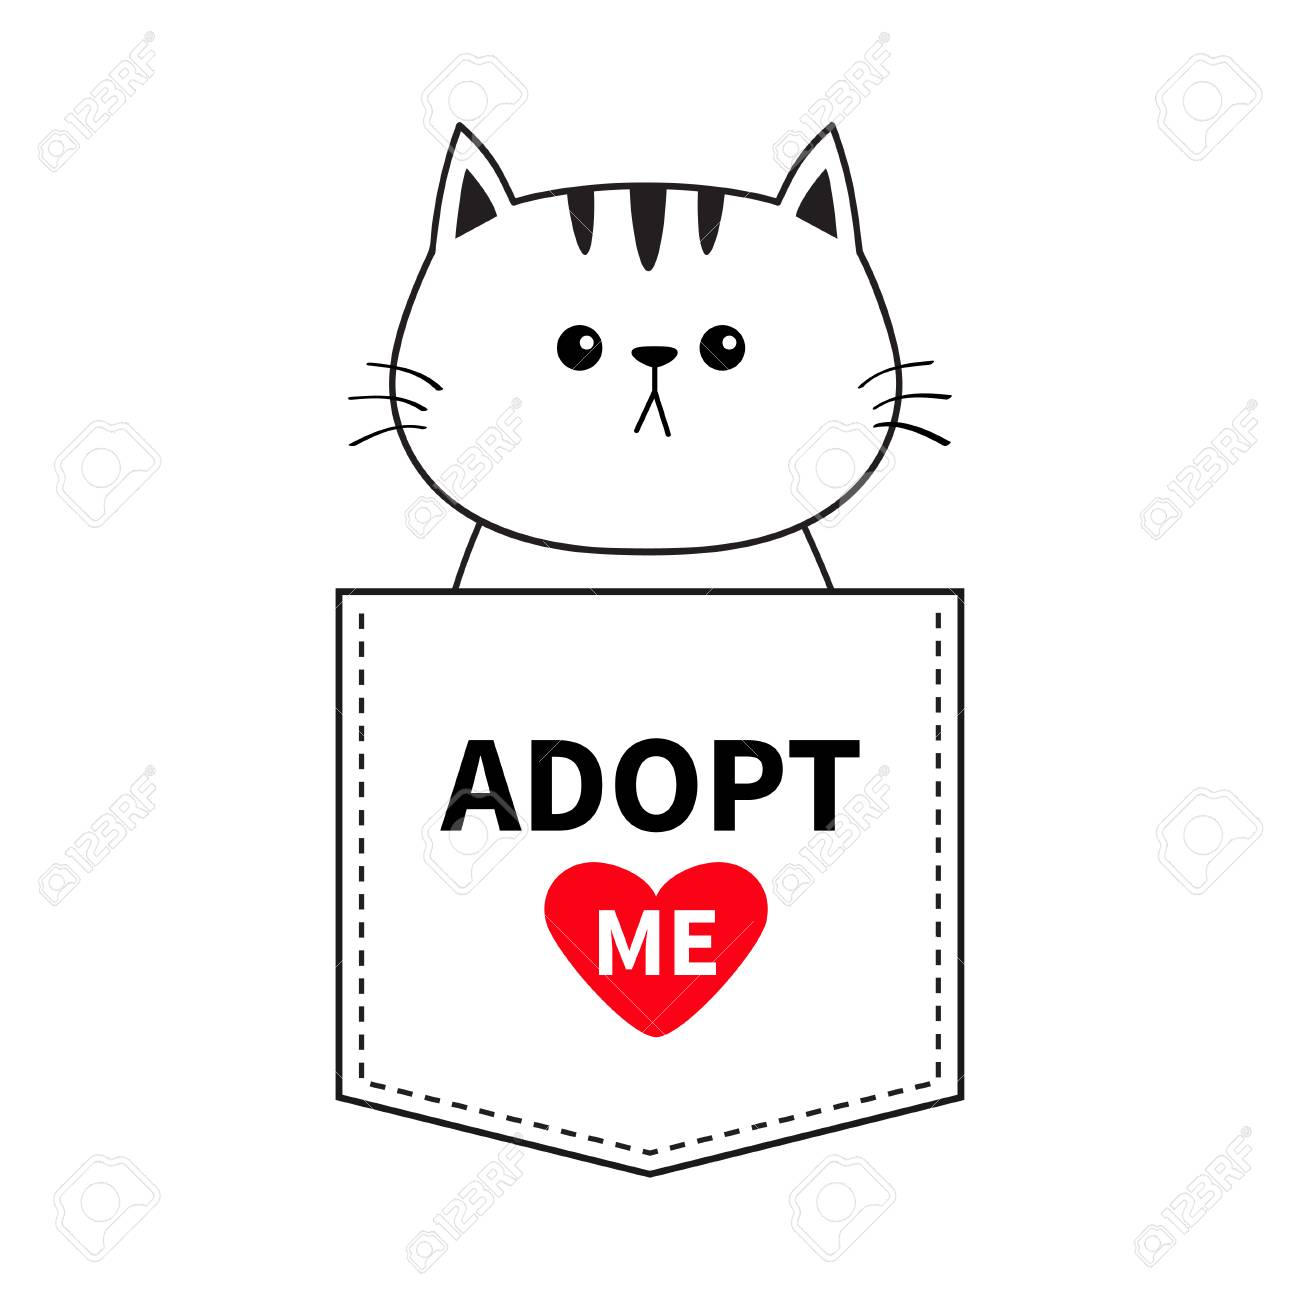 Image of: Clipart Cat Sitting In The Pocket Adopt Me Red Heart Cute Cartoon Animals 123rf Cat Sitting In The Pocket Adopt Me Red Heart Cute Cartoon Animals